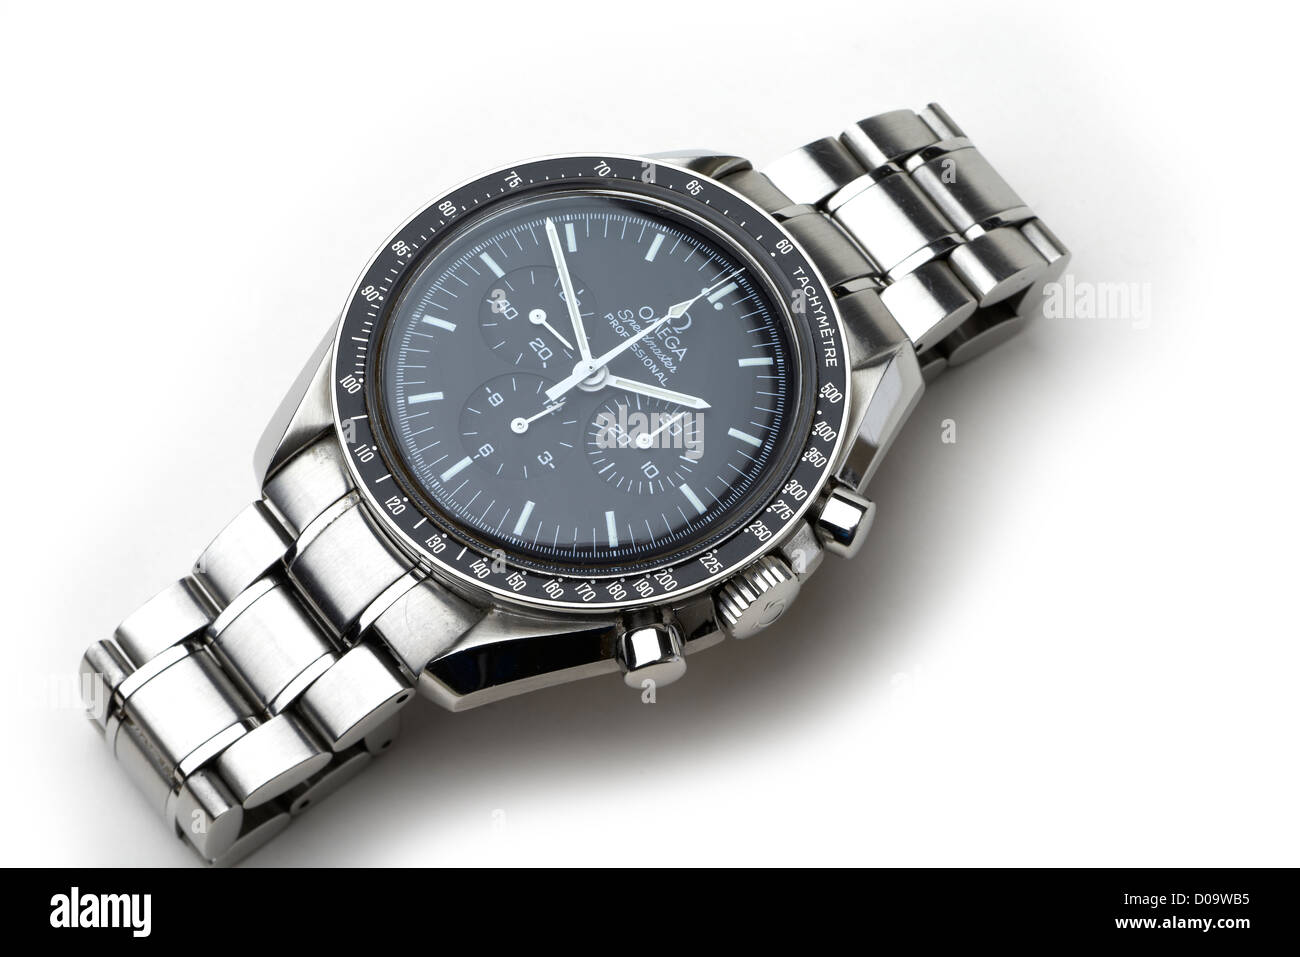 Omega Speedmaster the First Watch Worn on the Moon